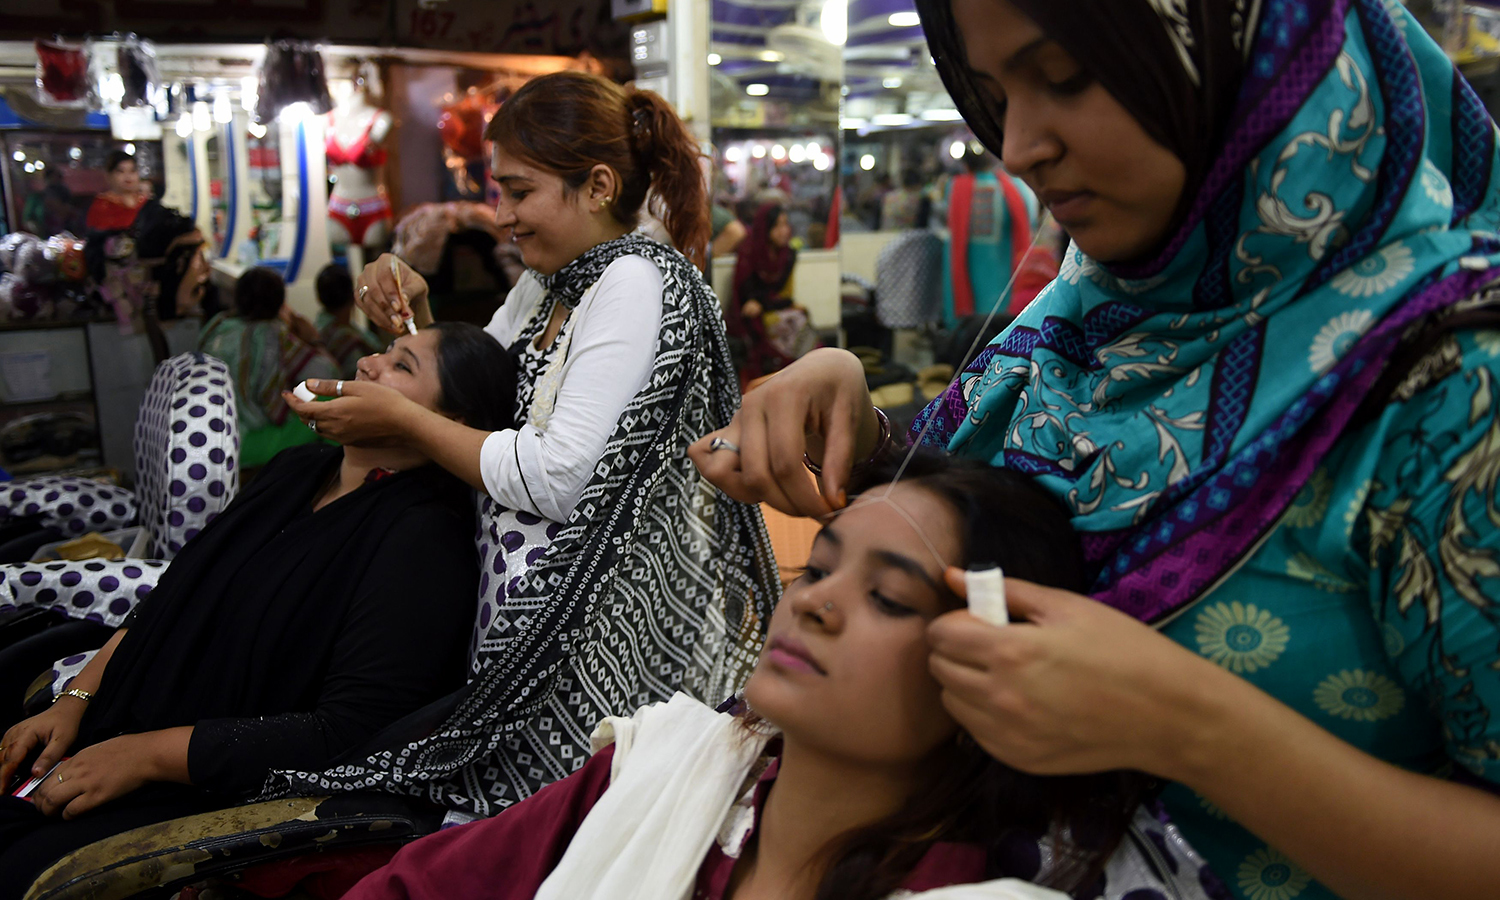 KARACHI: Women gather in beauty parlours to get their beauty regimens out of the way ahead of Eid. —AFP/Asif Hassan